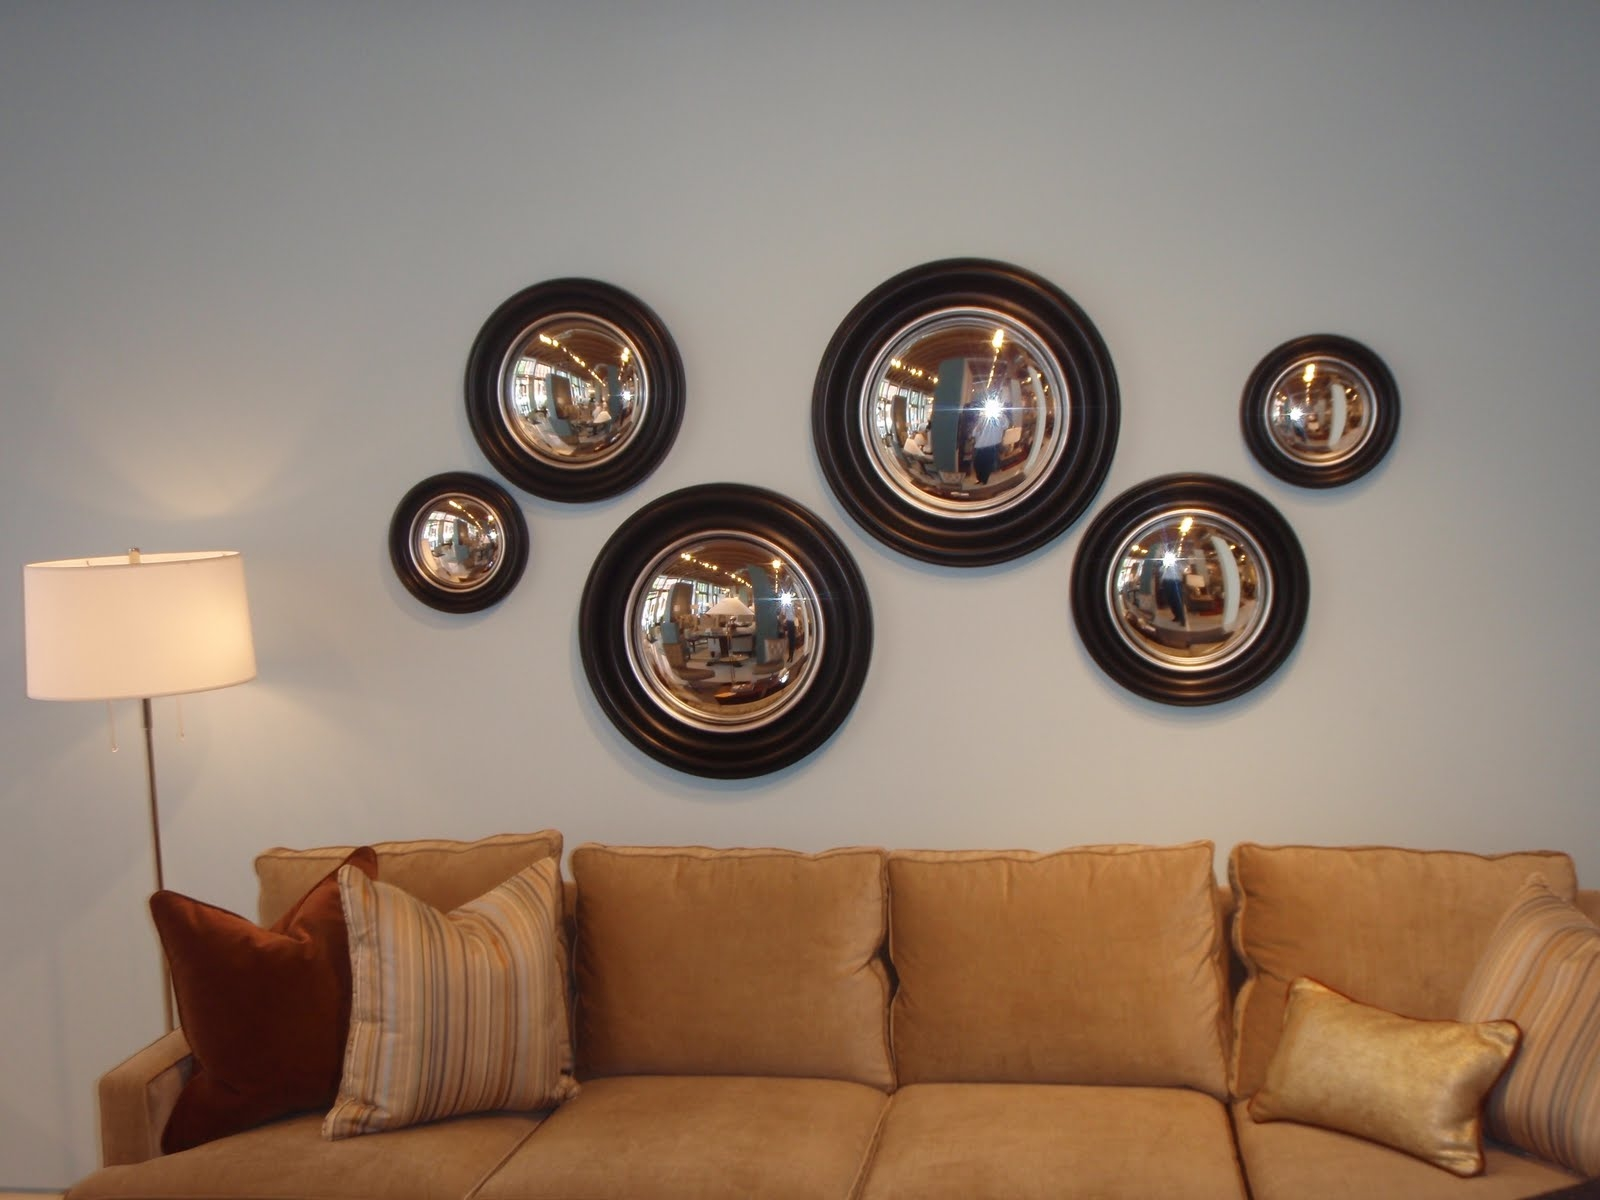 Decorative Convex Mirror Photos With Regard To Convex Mirror Decorative (Image 8 of 15)